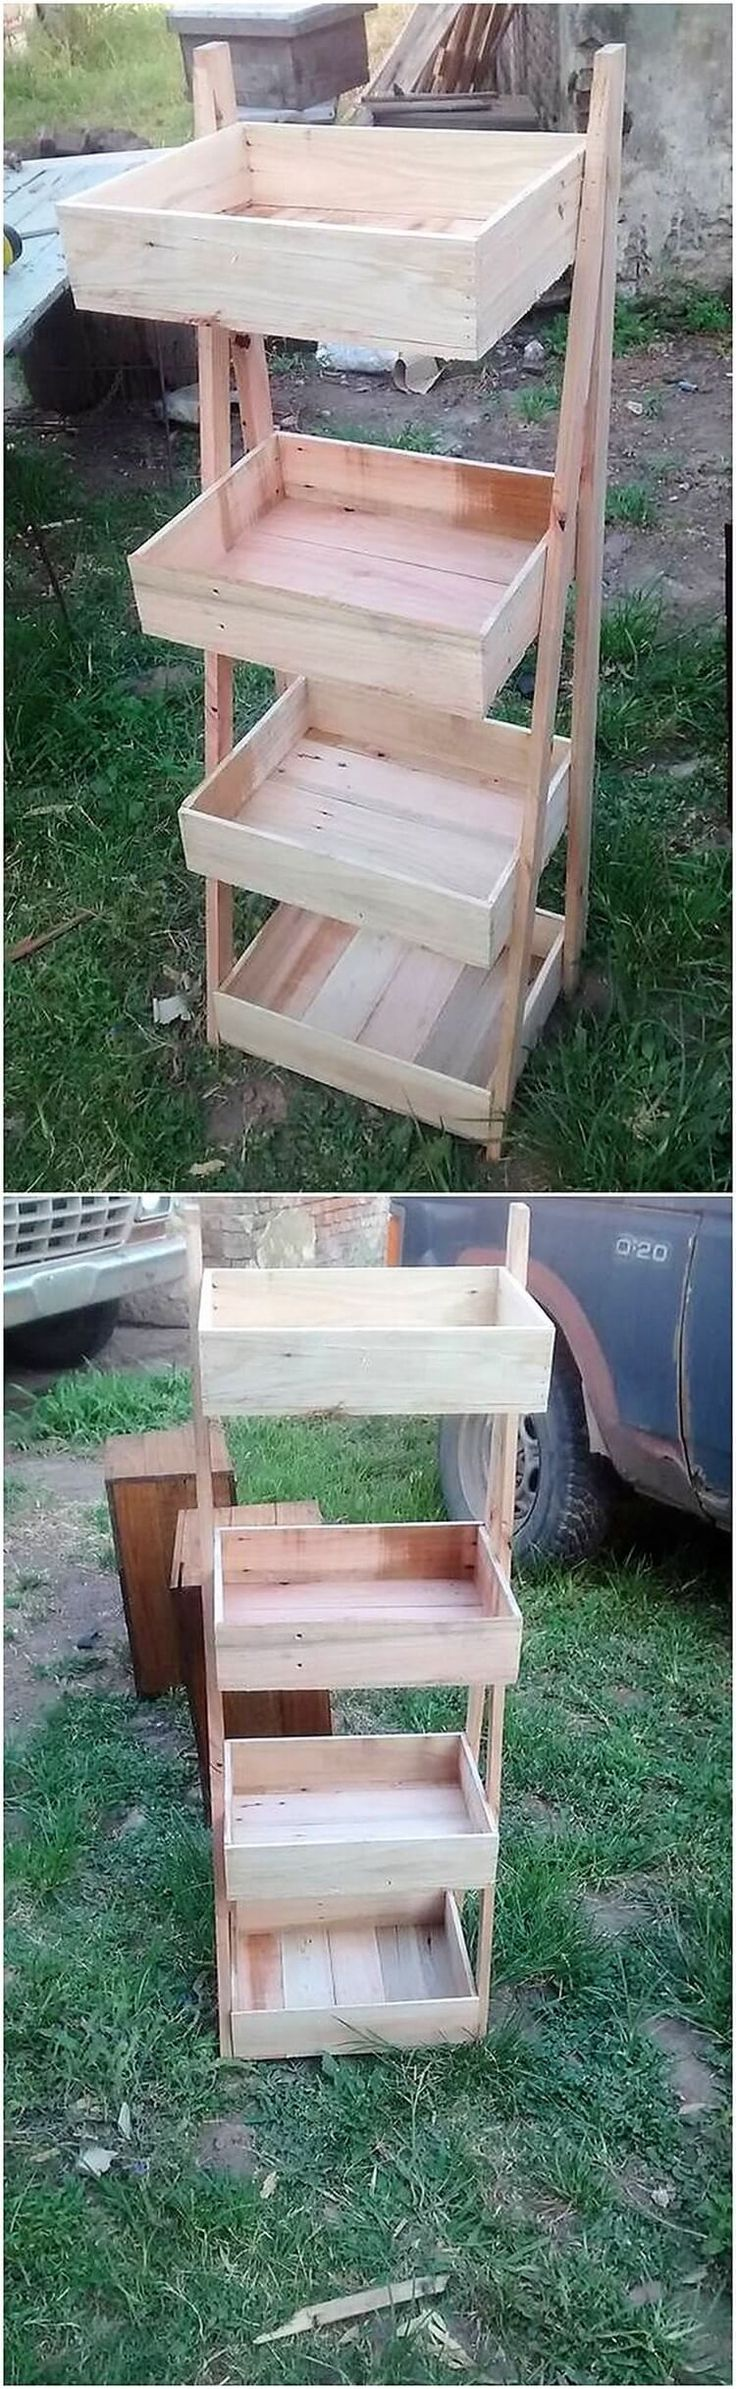 In terms of there recycling the wood pallet in your kitchen area this designing idea is best one for you. If you are creative enough then you can even think about designing it by your own self help. It is all set into the shape of the well style that looks so unique and creative for others. Try it now!